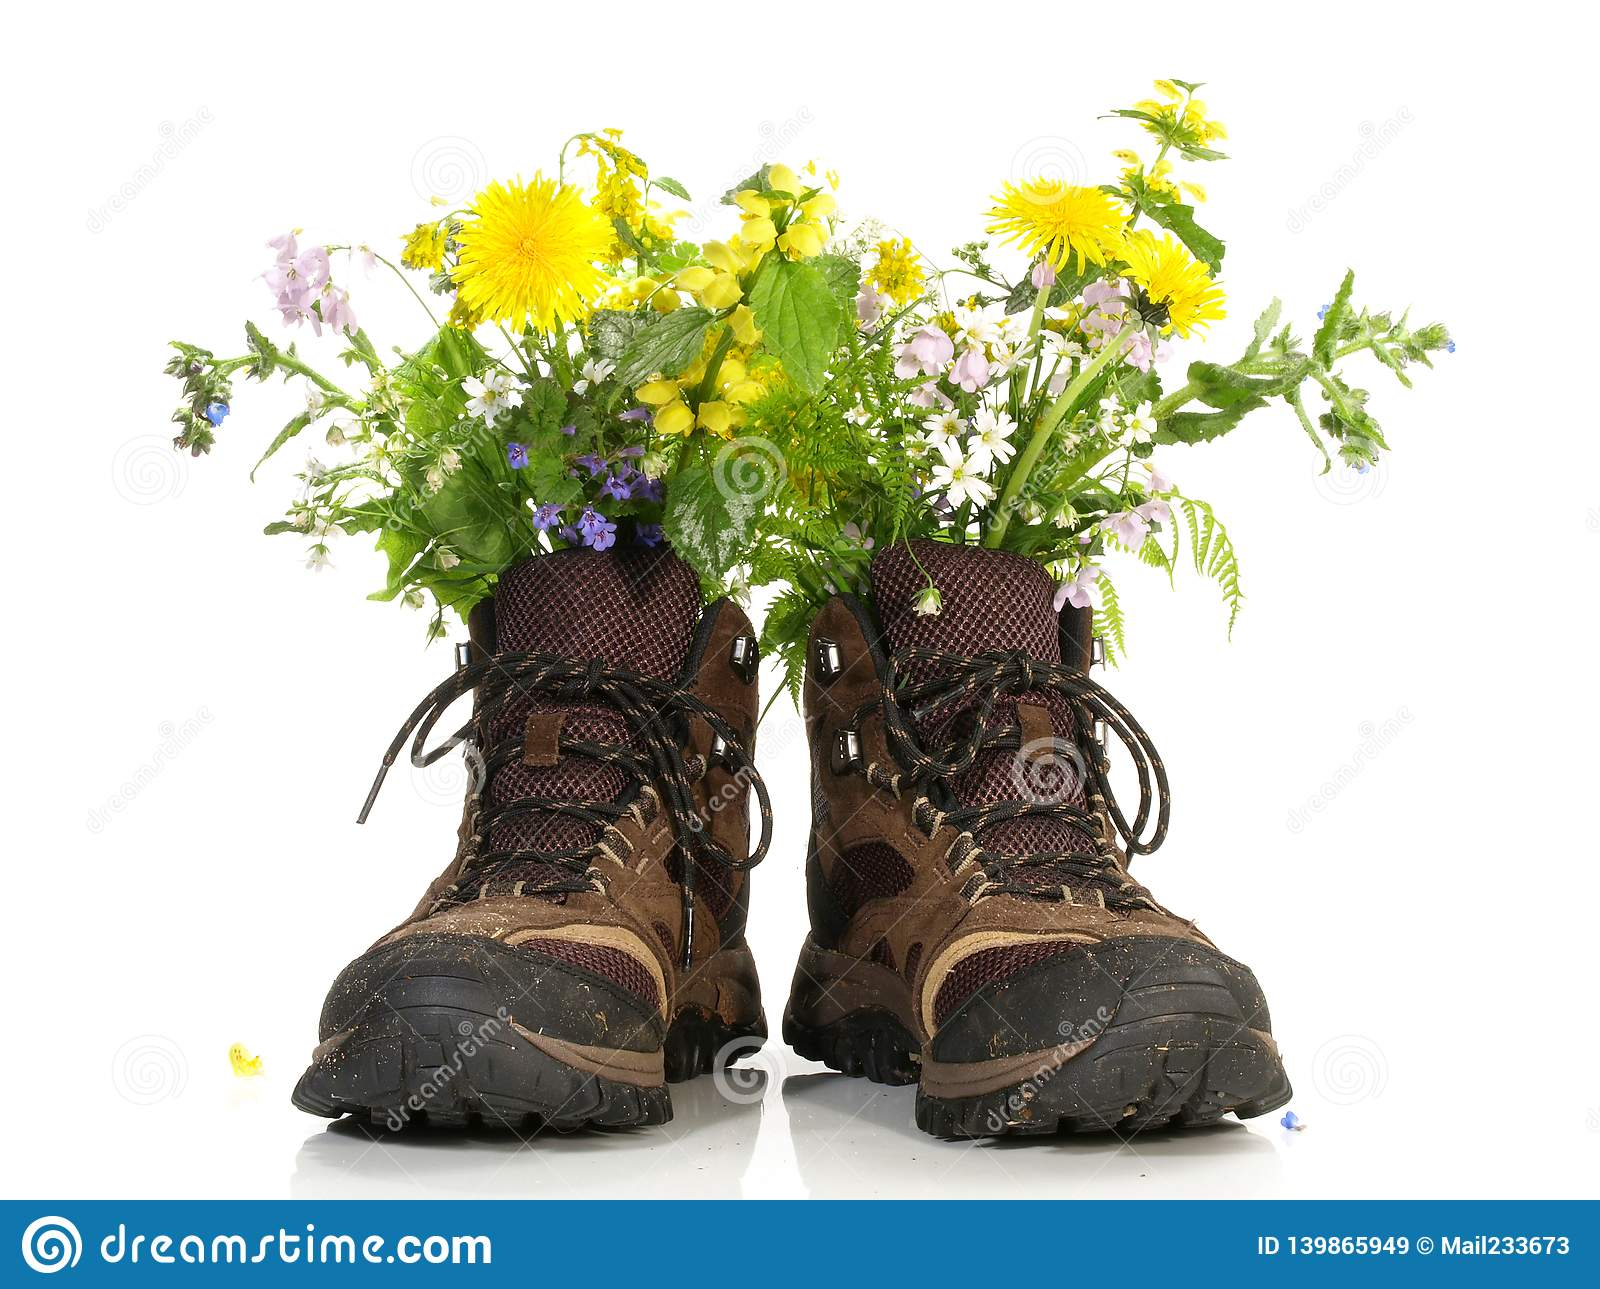 Hiking Shoes with Flowers